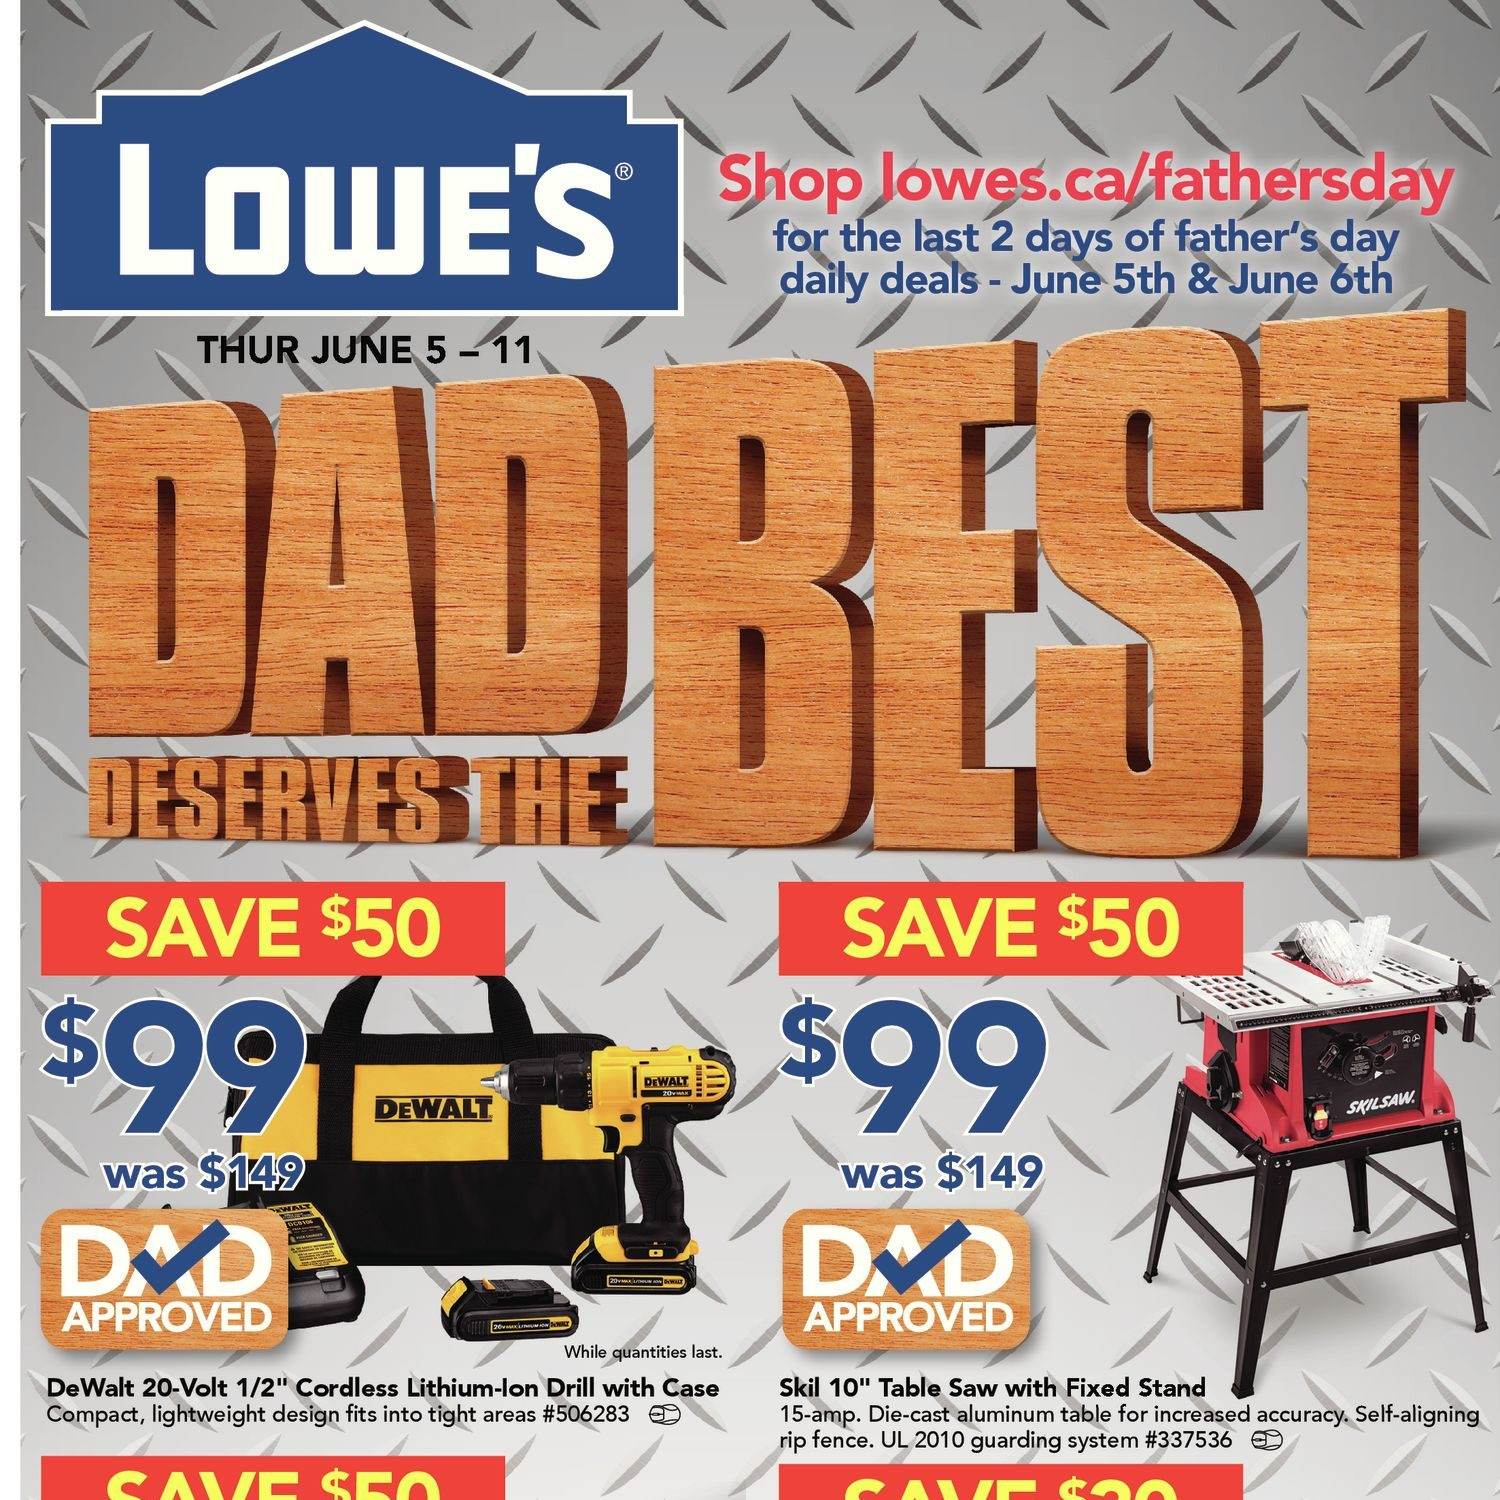 Lowe's Weekly Flyer - Weekly Flyer - Dad Desserves The Best